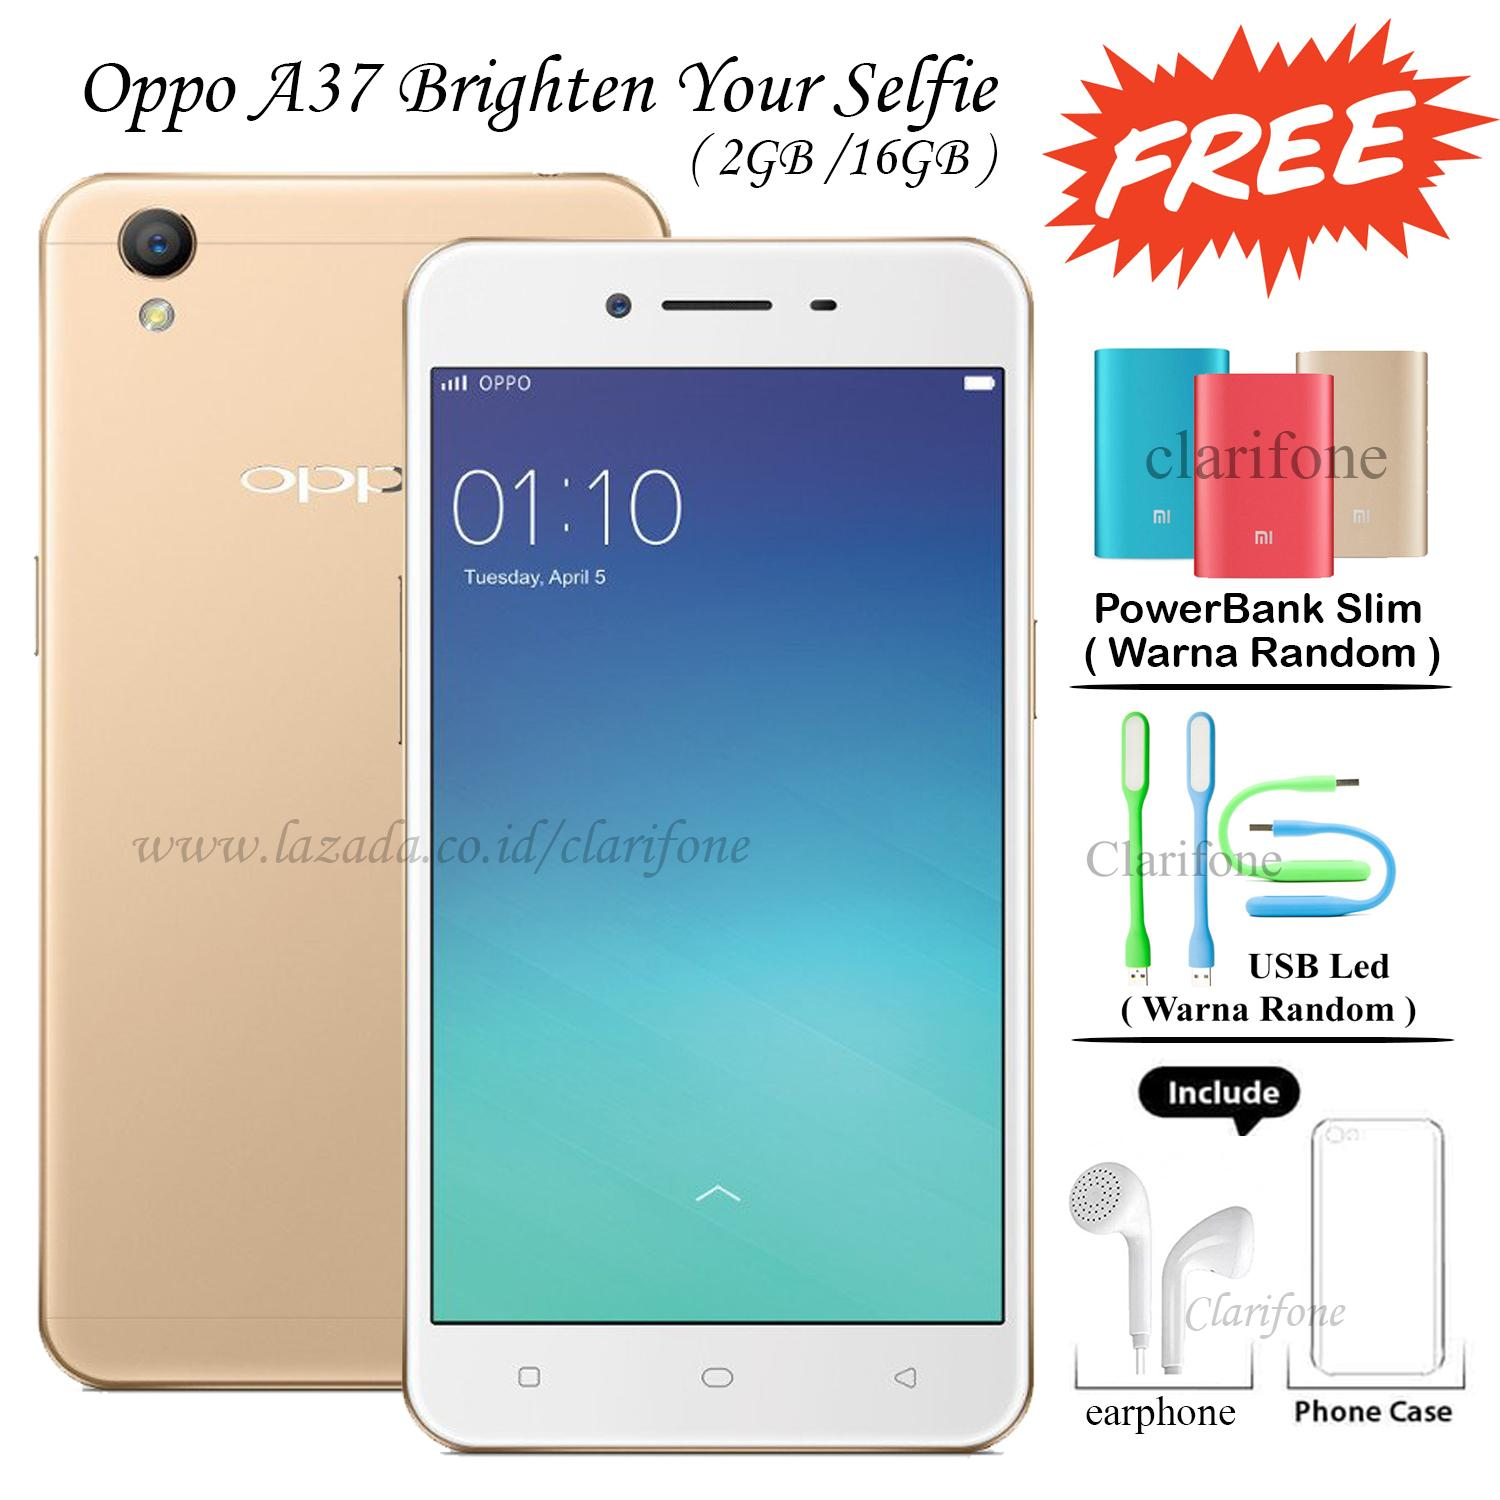 Robot Source · Rose Gold Gratis Powerbank Source Oppo F1s Selfie Expert 32 GB Gold Source Oppo A37 16GB. Source · Oppo A37 16GB Layar 5 inch Jaringan 4G ...